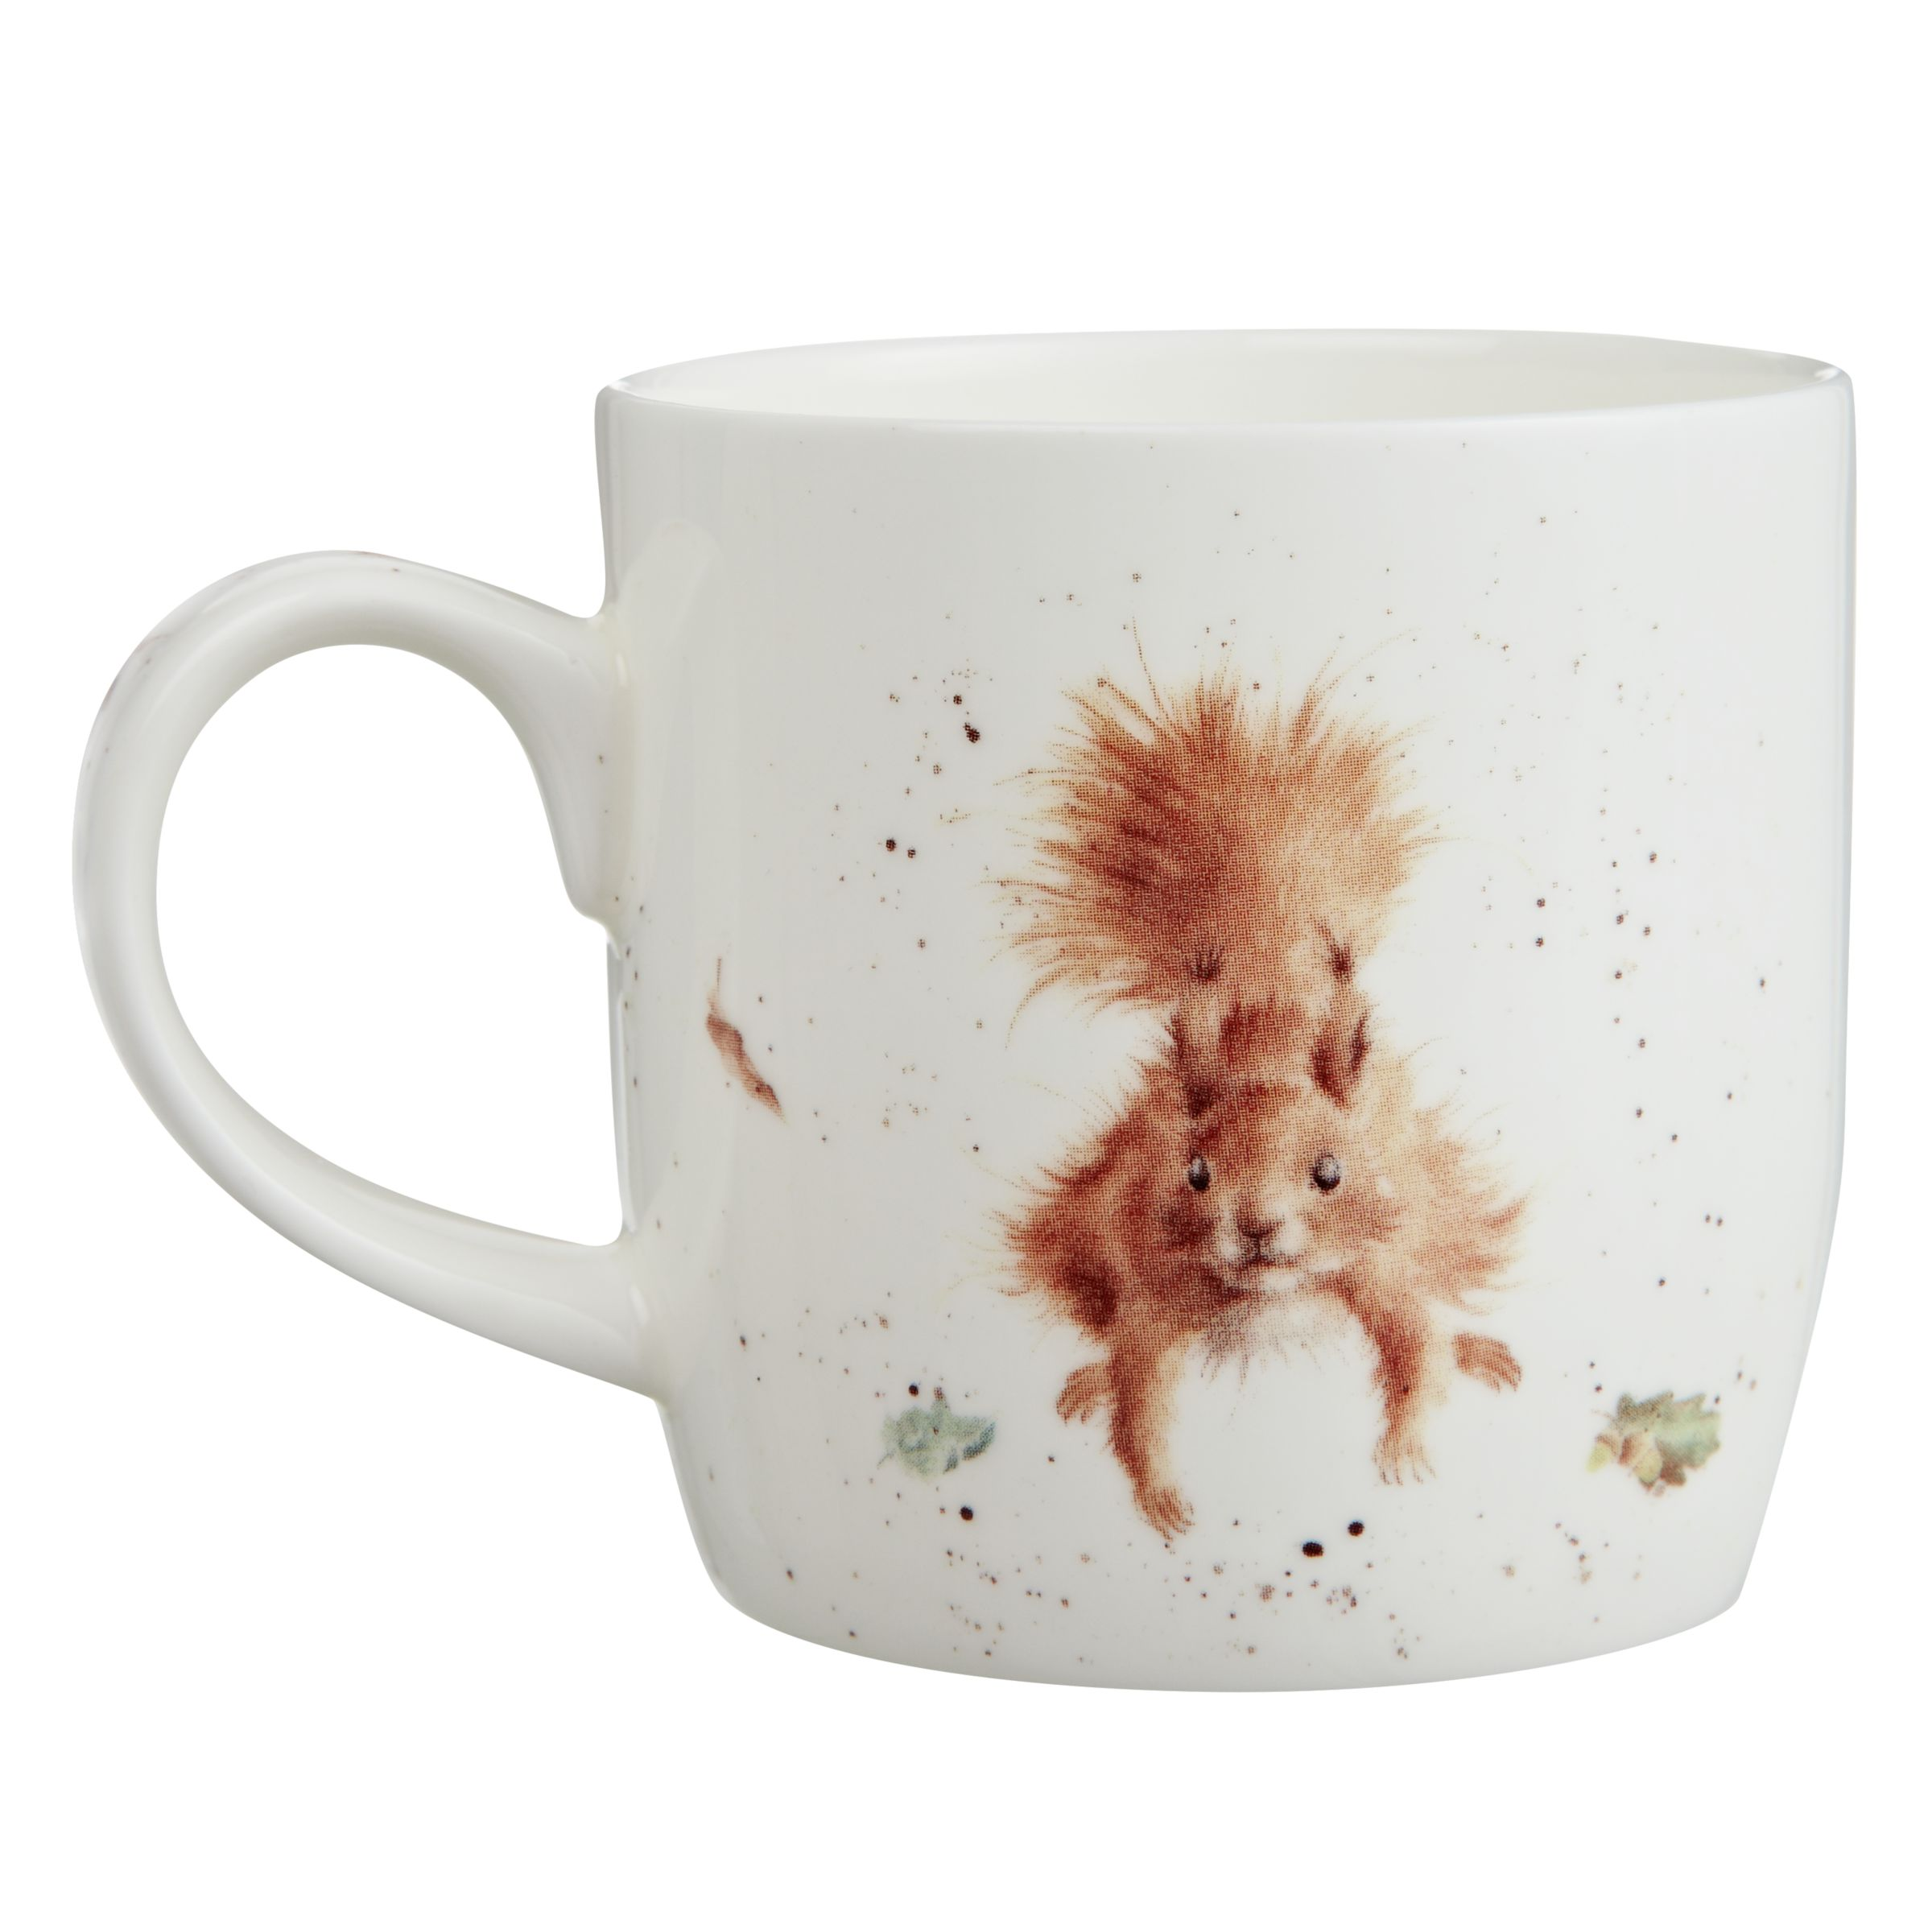 Royal Worcester Royal Worcester Wrendale Squirrel Mug